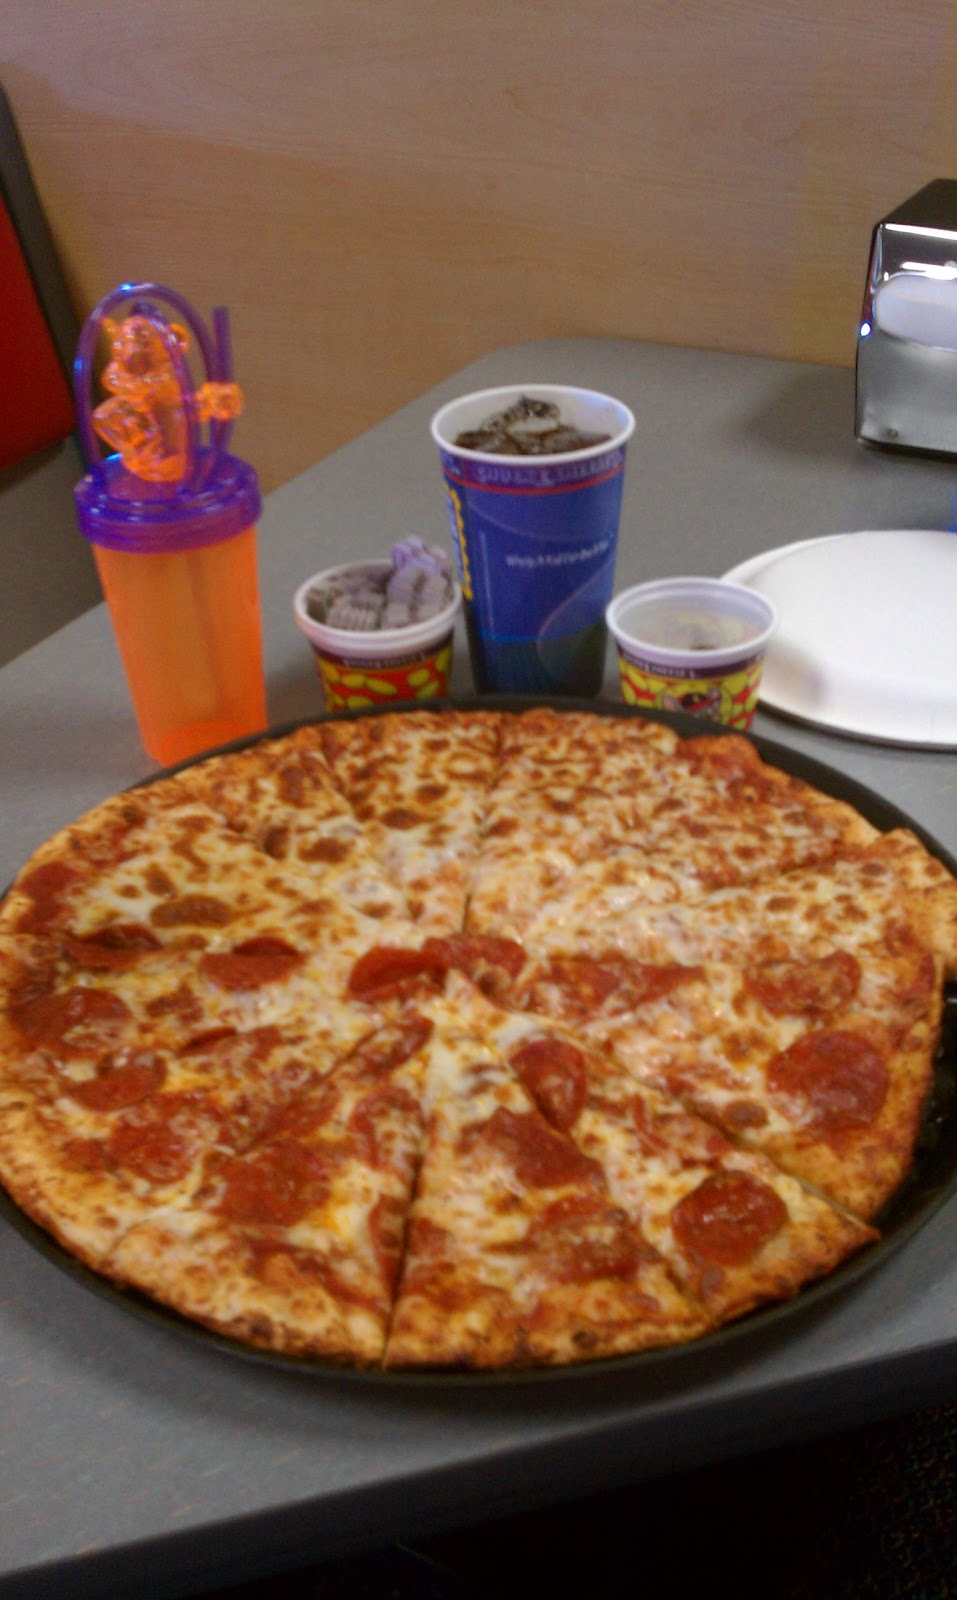 In reality, this colorful concoction is a regular ol' cheese pizza. Actually, it's a white pizza. Here's the thing — the pizza wizards at Chuck E. Cheese's have arranged the cheese to look like the traditional tri-colored candy corn. Yep. This white pizza has garlic mozzarella cheese in .